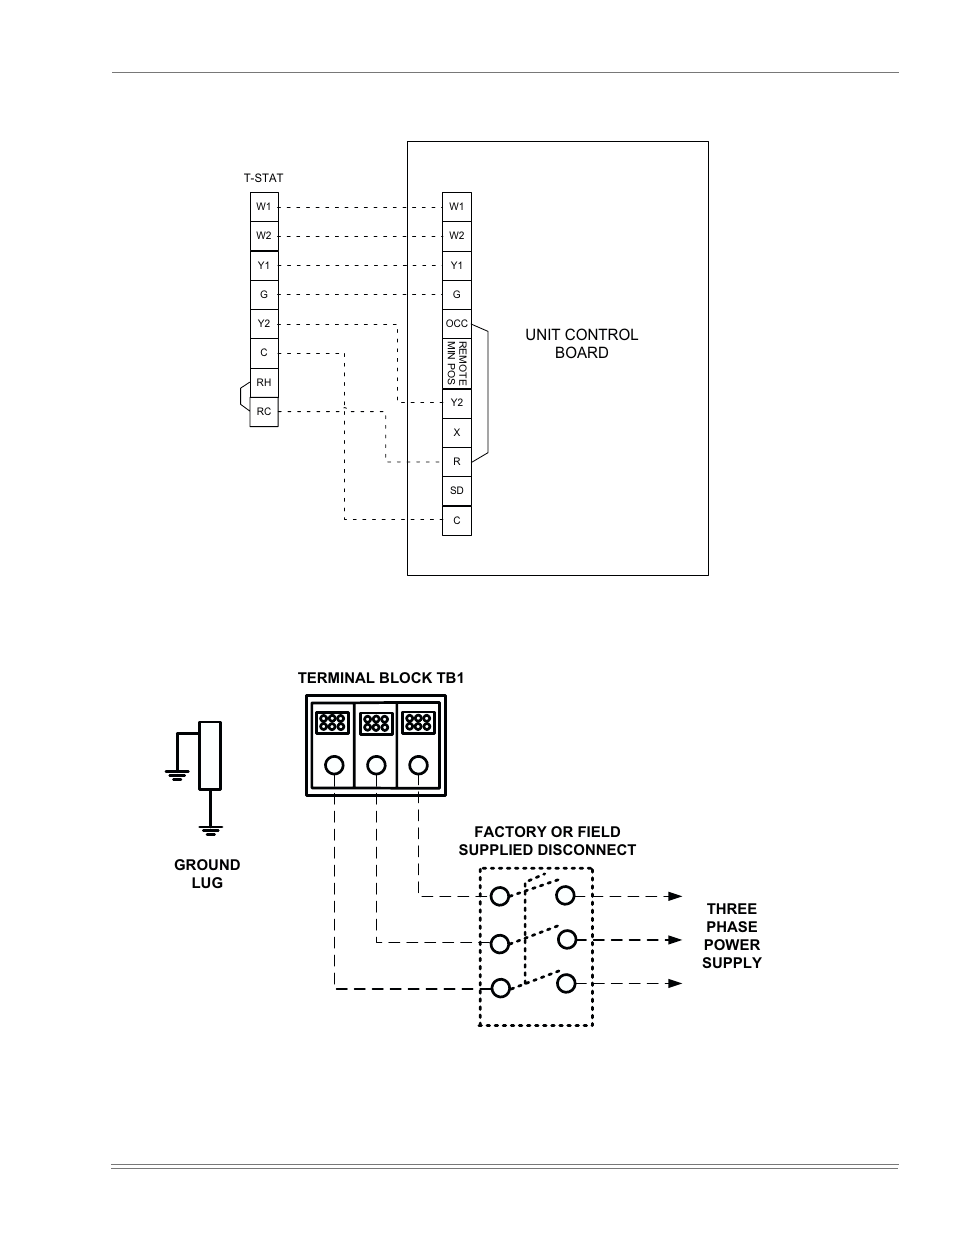 Figure 17 Field Wiring 24 Volt Thermostat York Dj150 User Manual Page 19 52